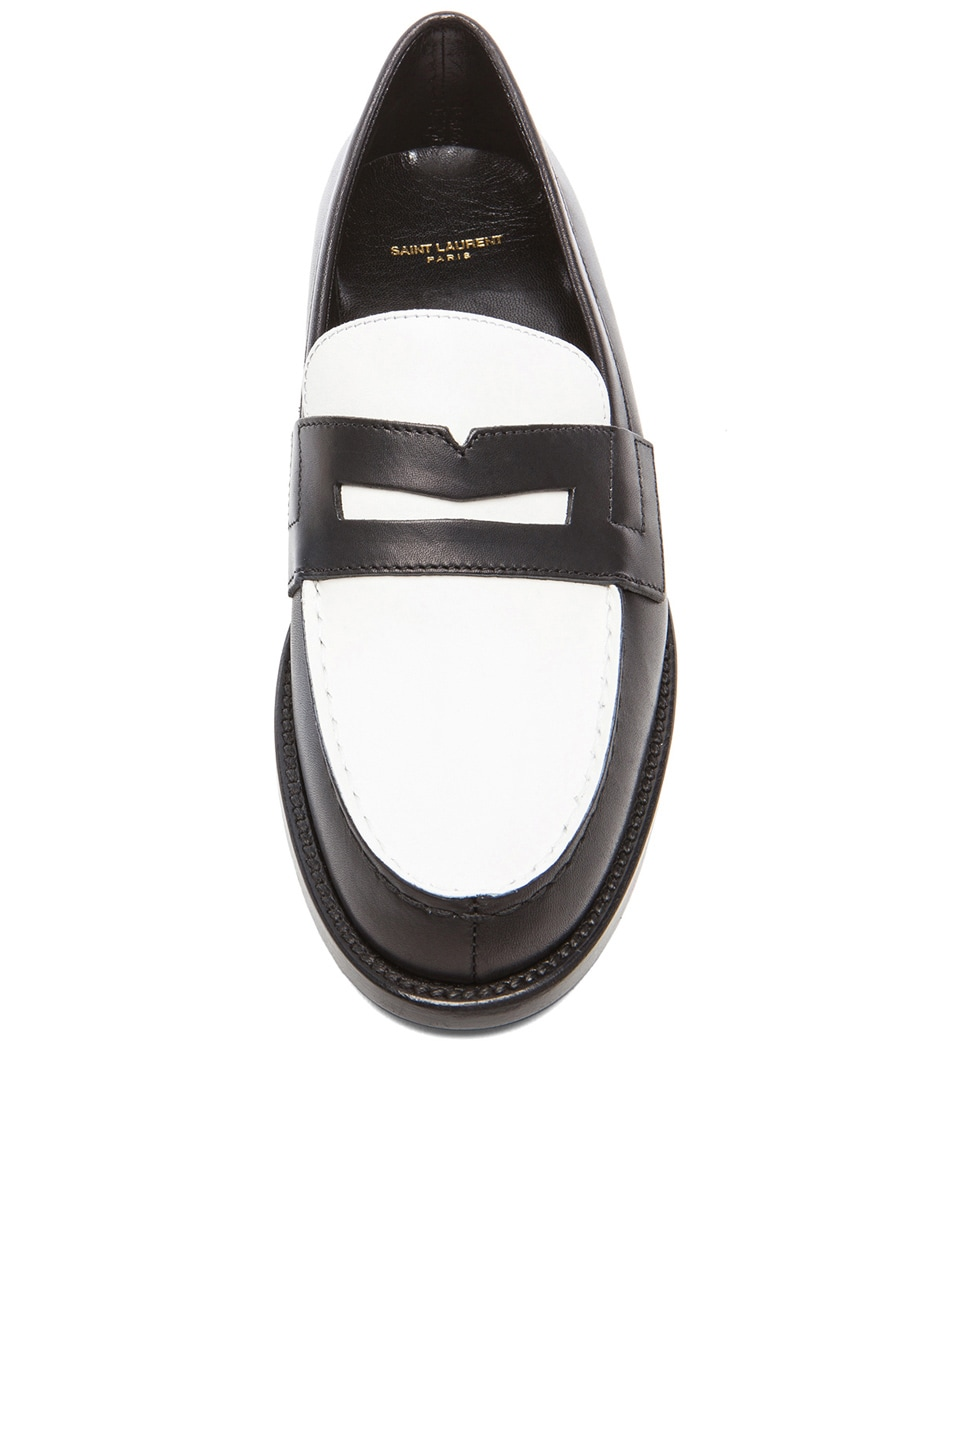 moccasin loafers - Black Saint Laurent bAFJmb